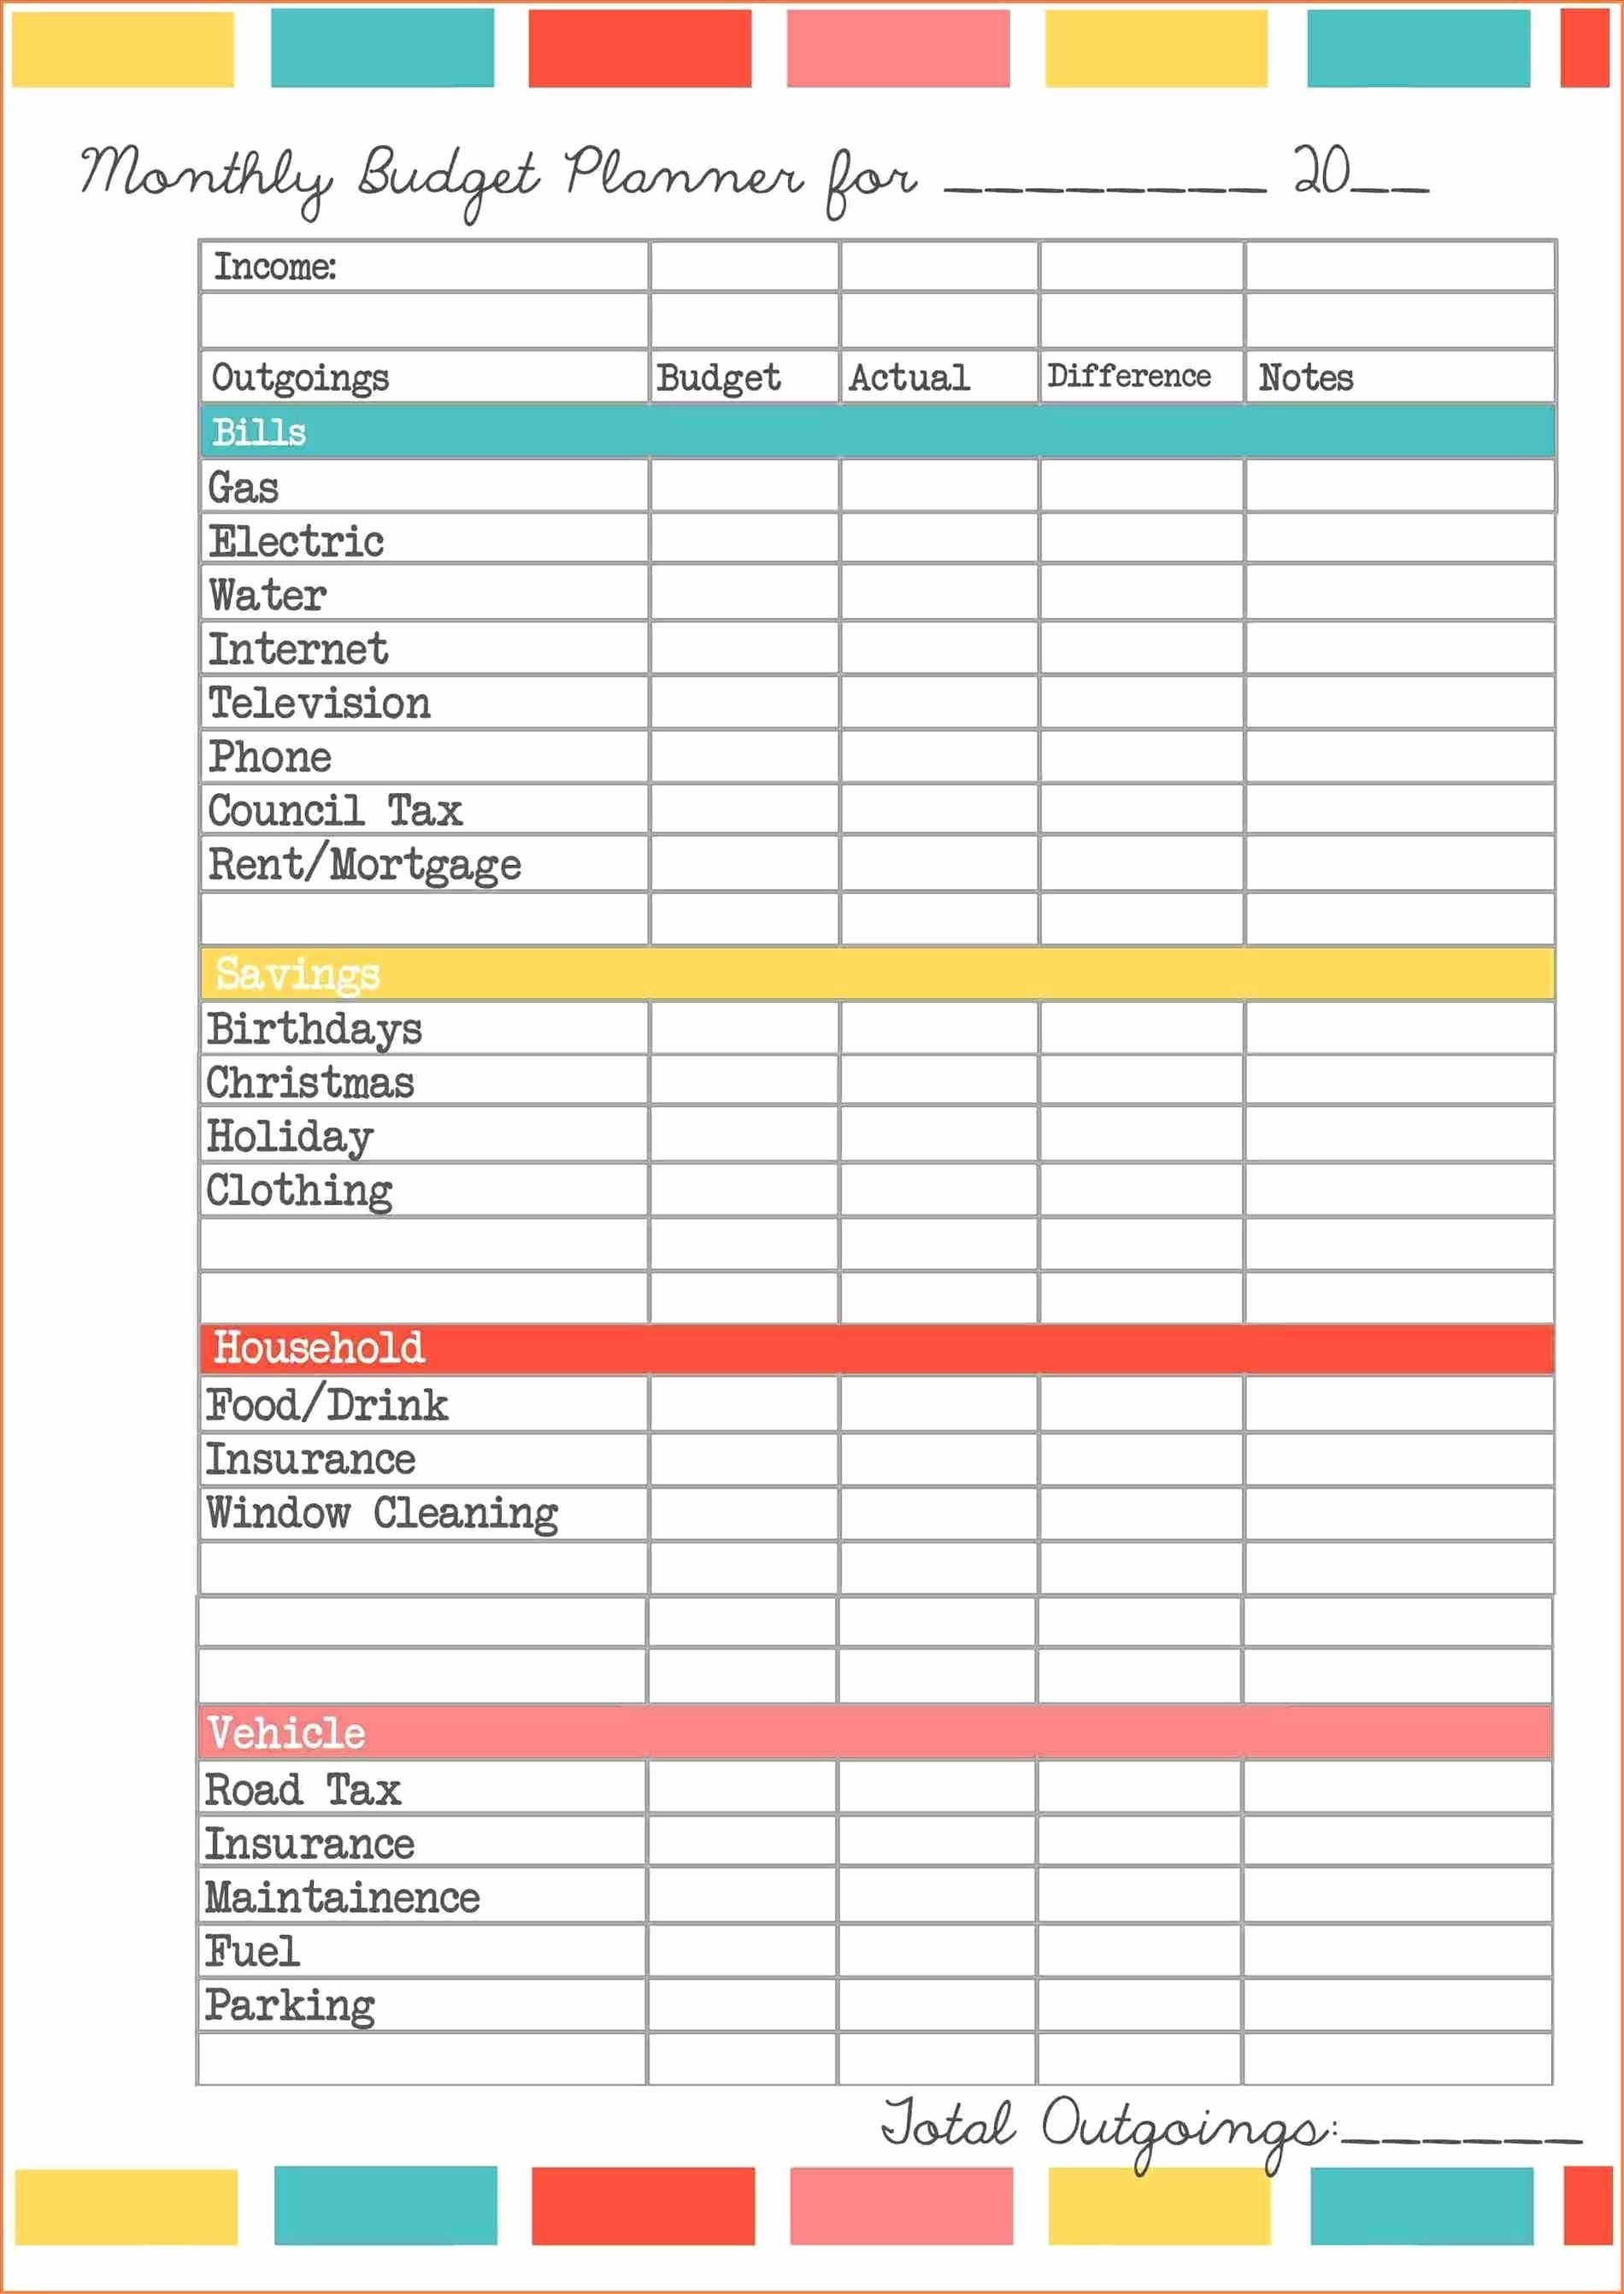 Bookkeeping Templates For Small Business Inspirationa Excel Intended For Basic Accounting Spreadsheet For Small Business